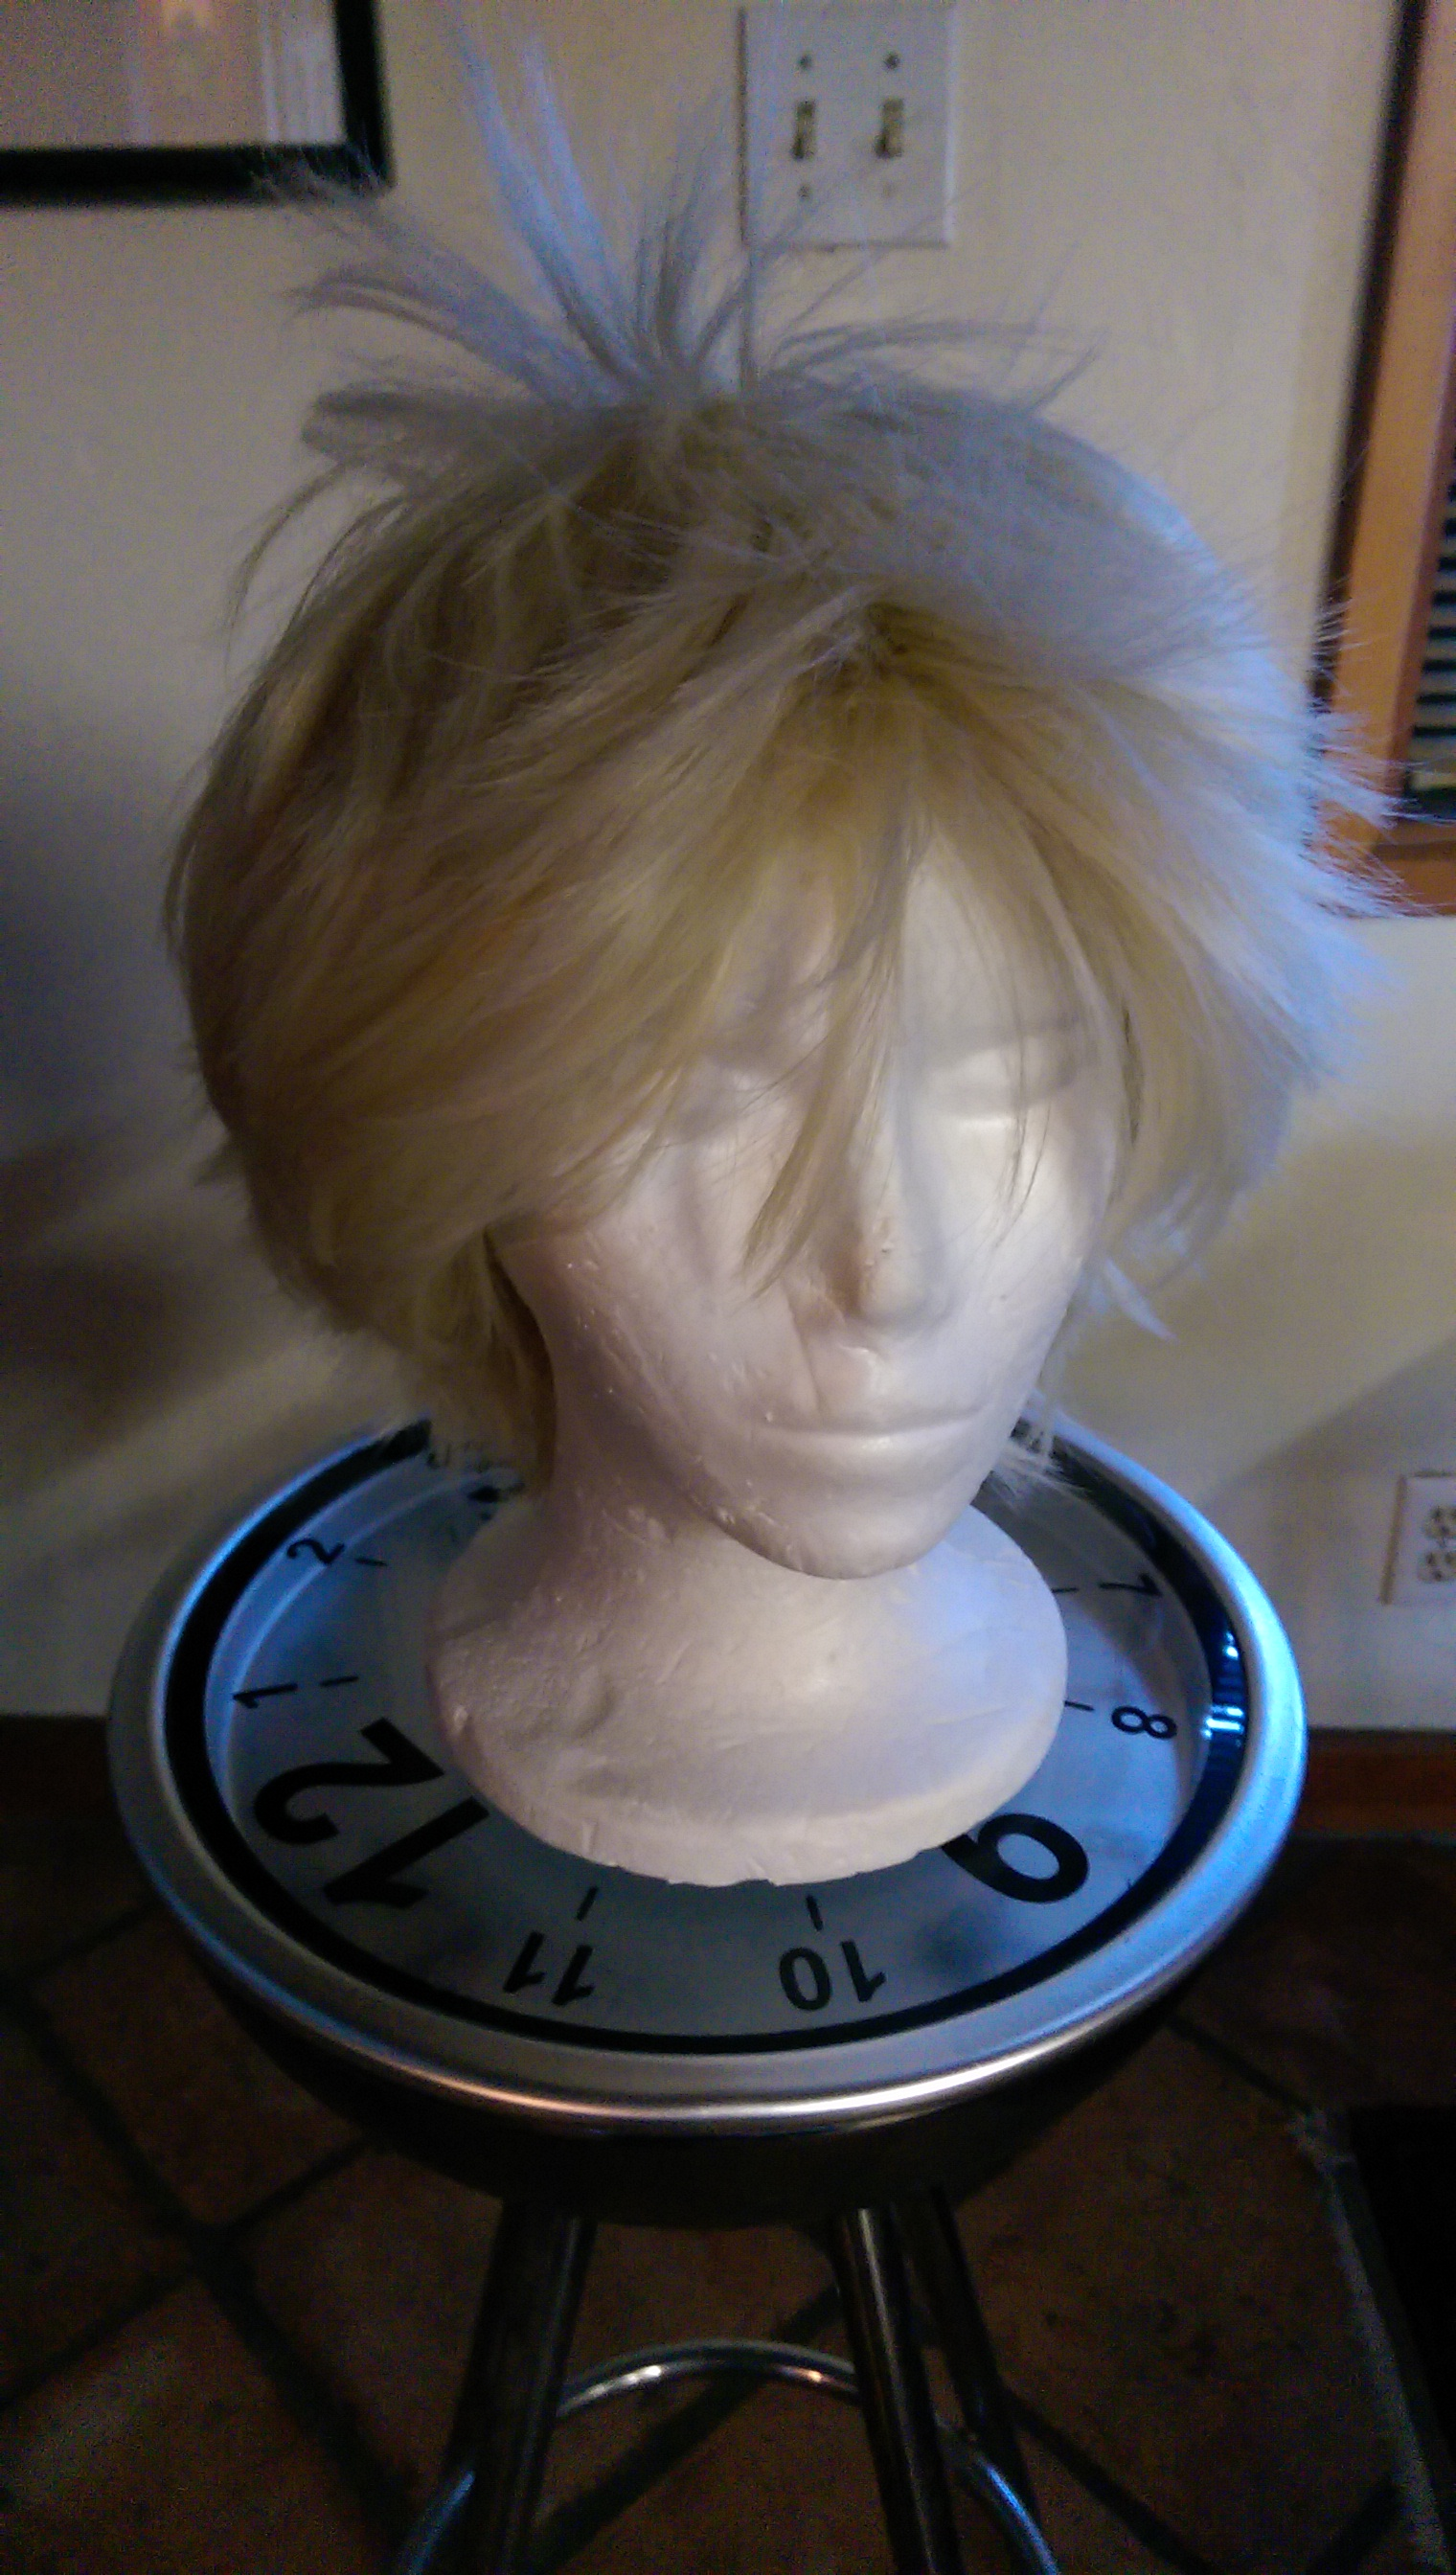 The wig as it originally appeared